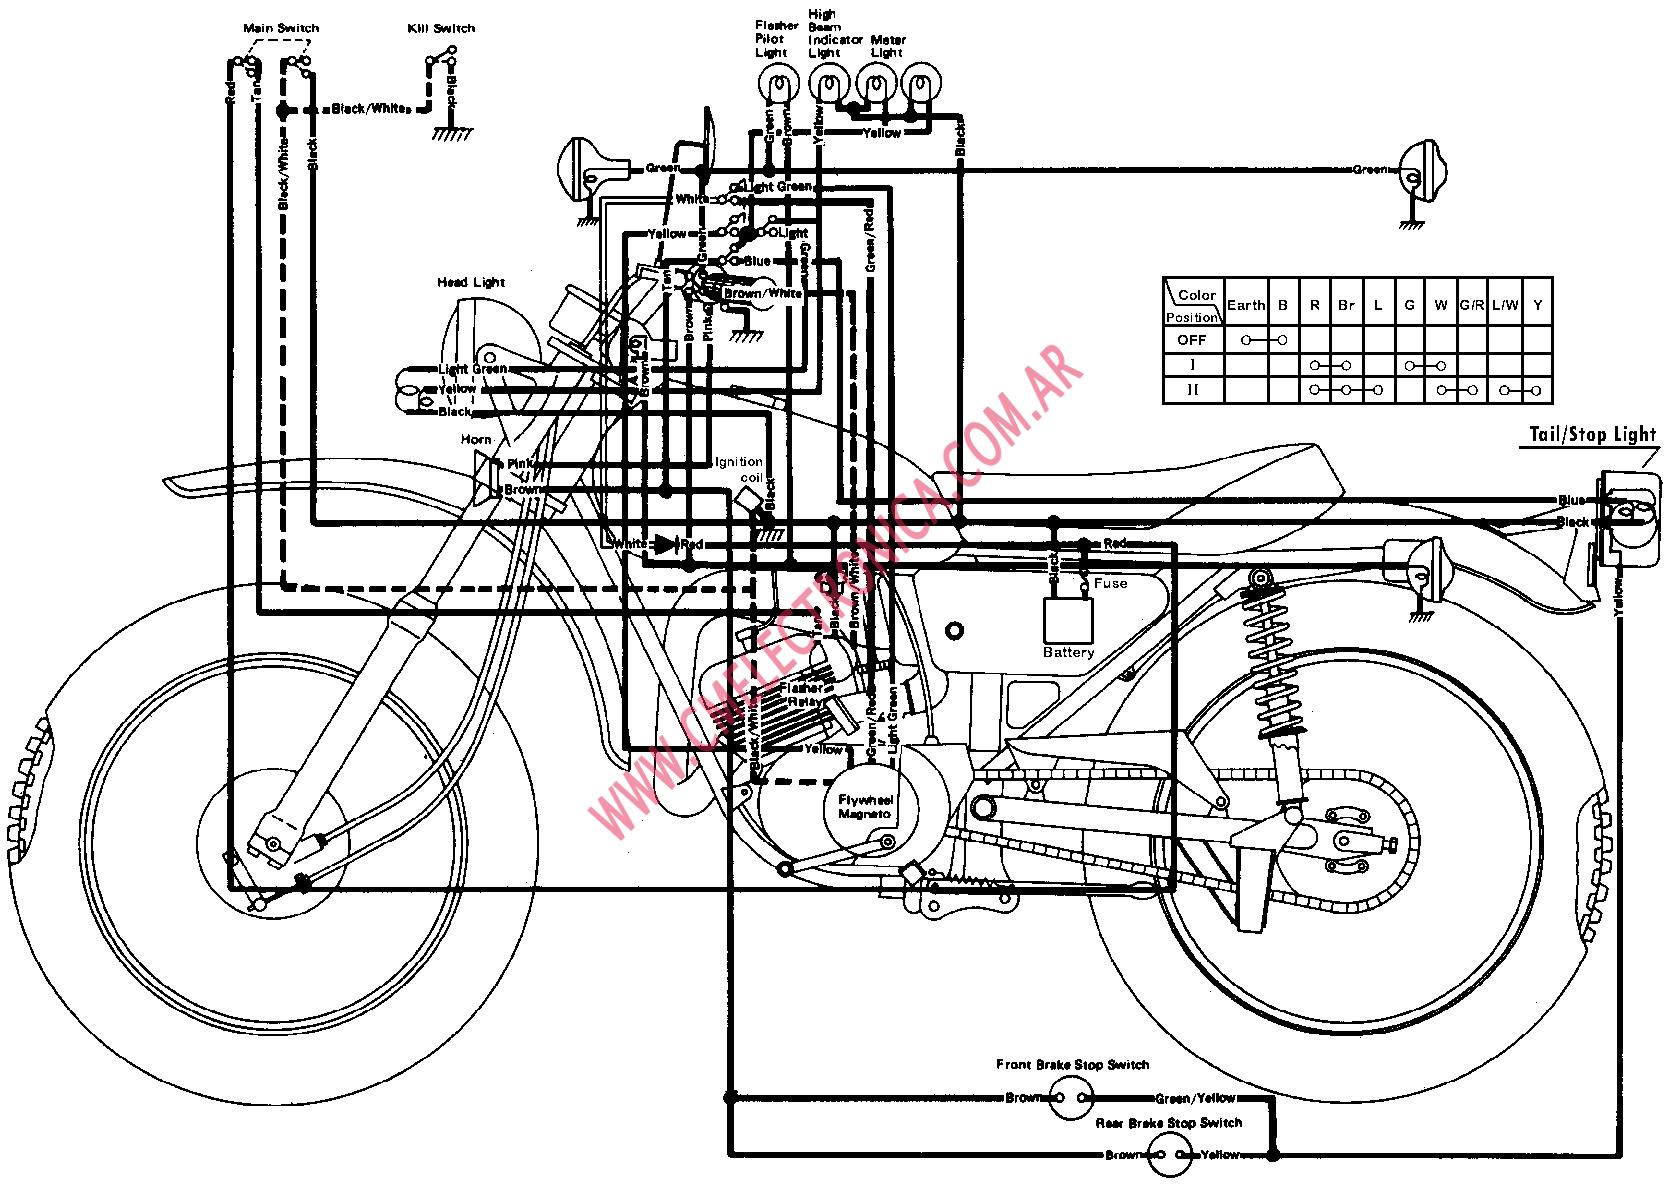 1975 yamaha dt 125 wiring diagram with Yamaha Dt 175 Wiring Diagram on 100 Indian Motorcycle Engine Diagram furthermore Motorcycle Kawasaki Ke100 Parts Diagram additionally Yamaha Dt 250 Wiring Diagram together with 1973 Yamaha Dt 250 Wiring Diagram likewise Jonway Scooter Engine Diagram.